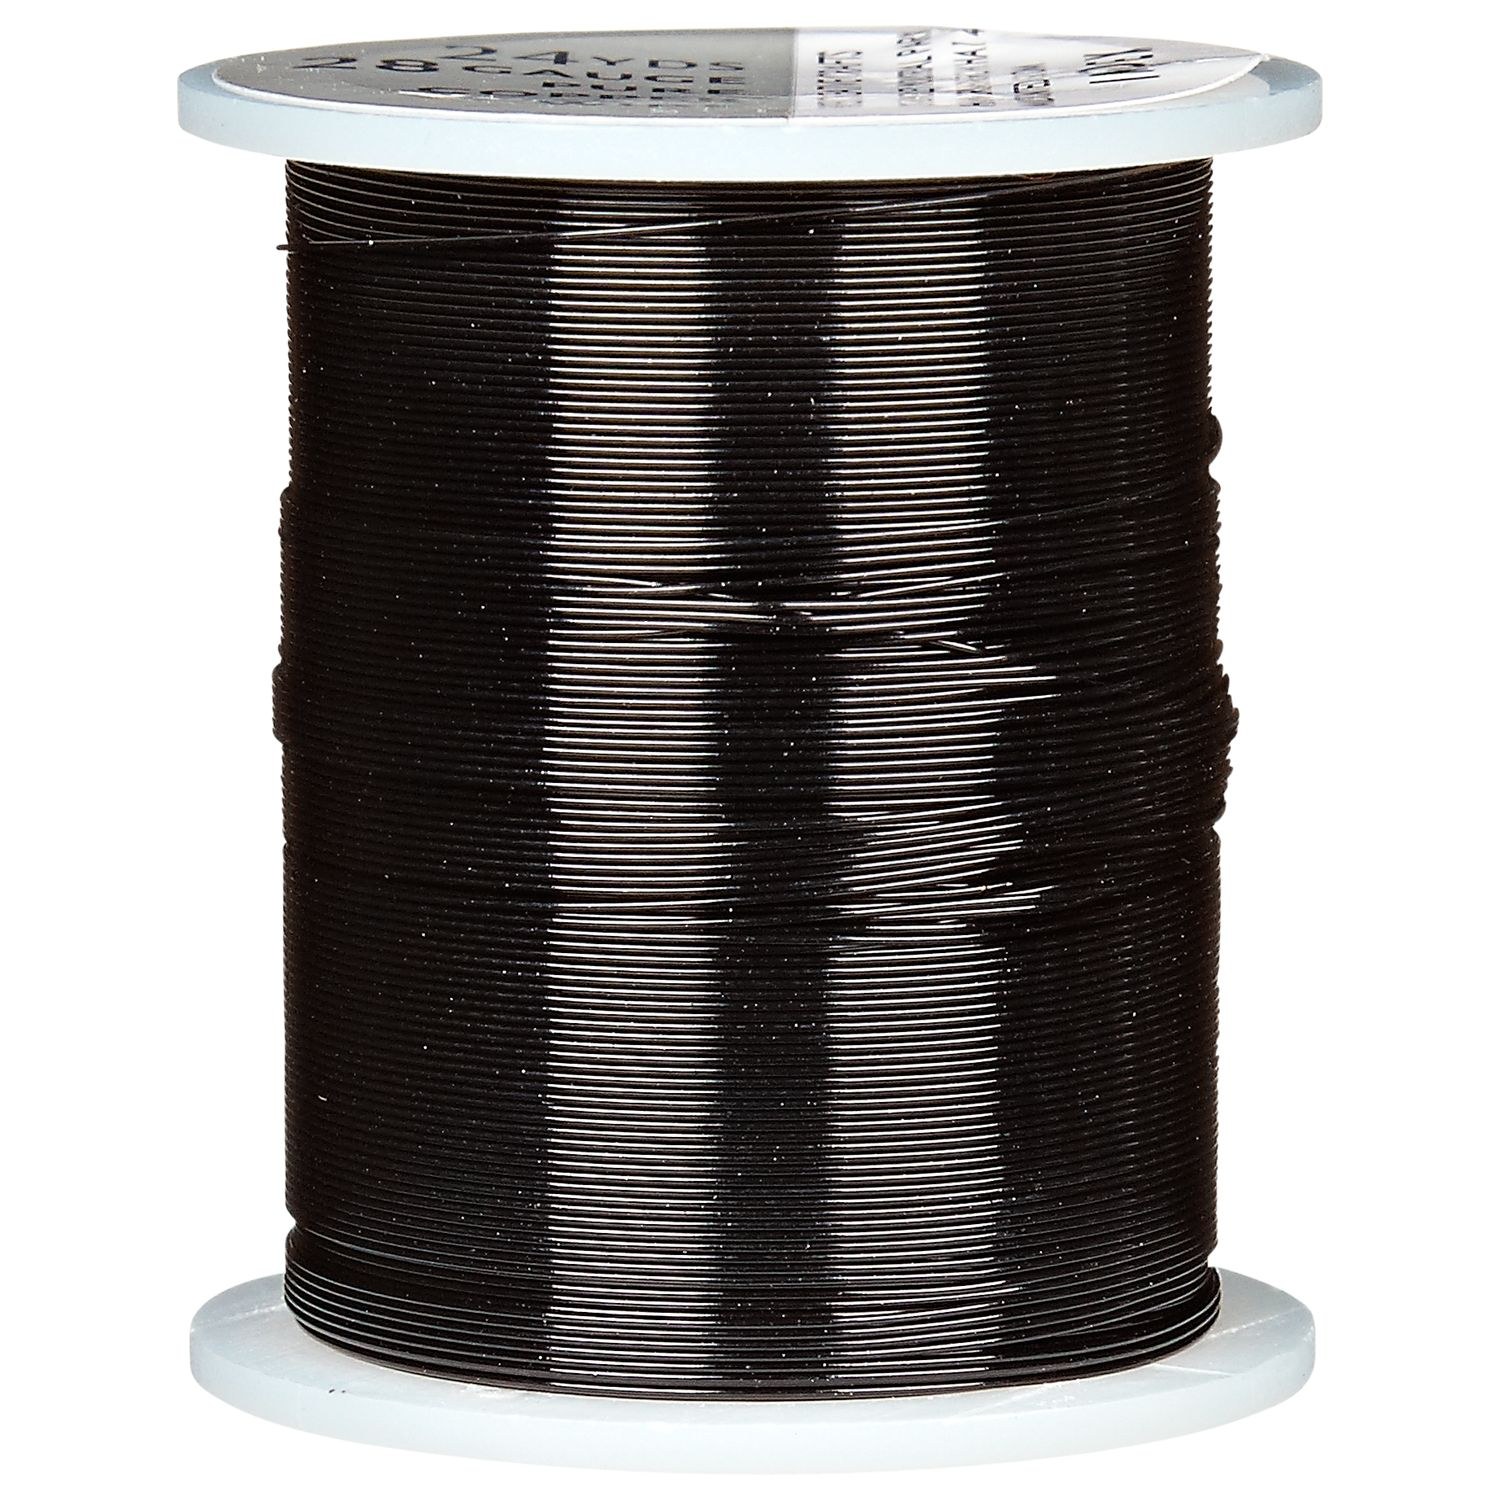 Groves A La Mode Trimits 28 Gauge Coloured Beading Wire, 22m, Black